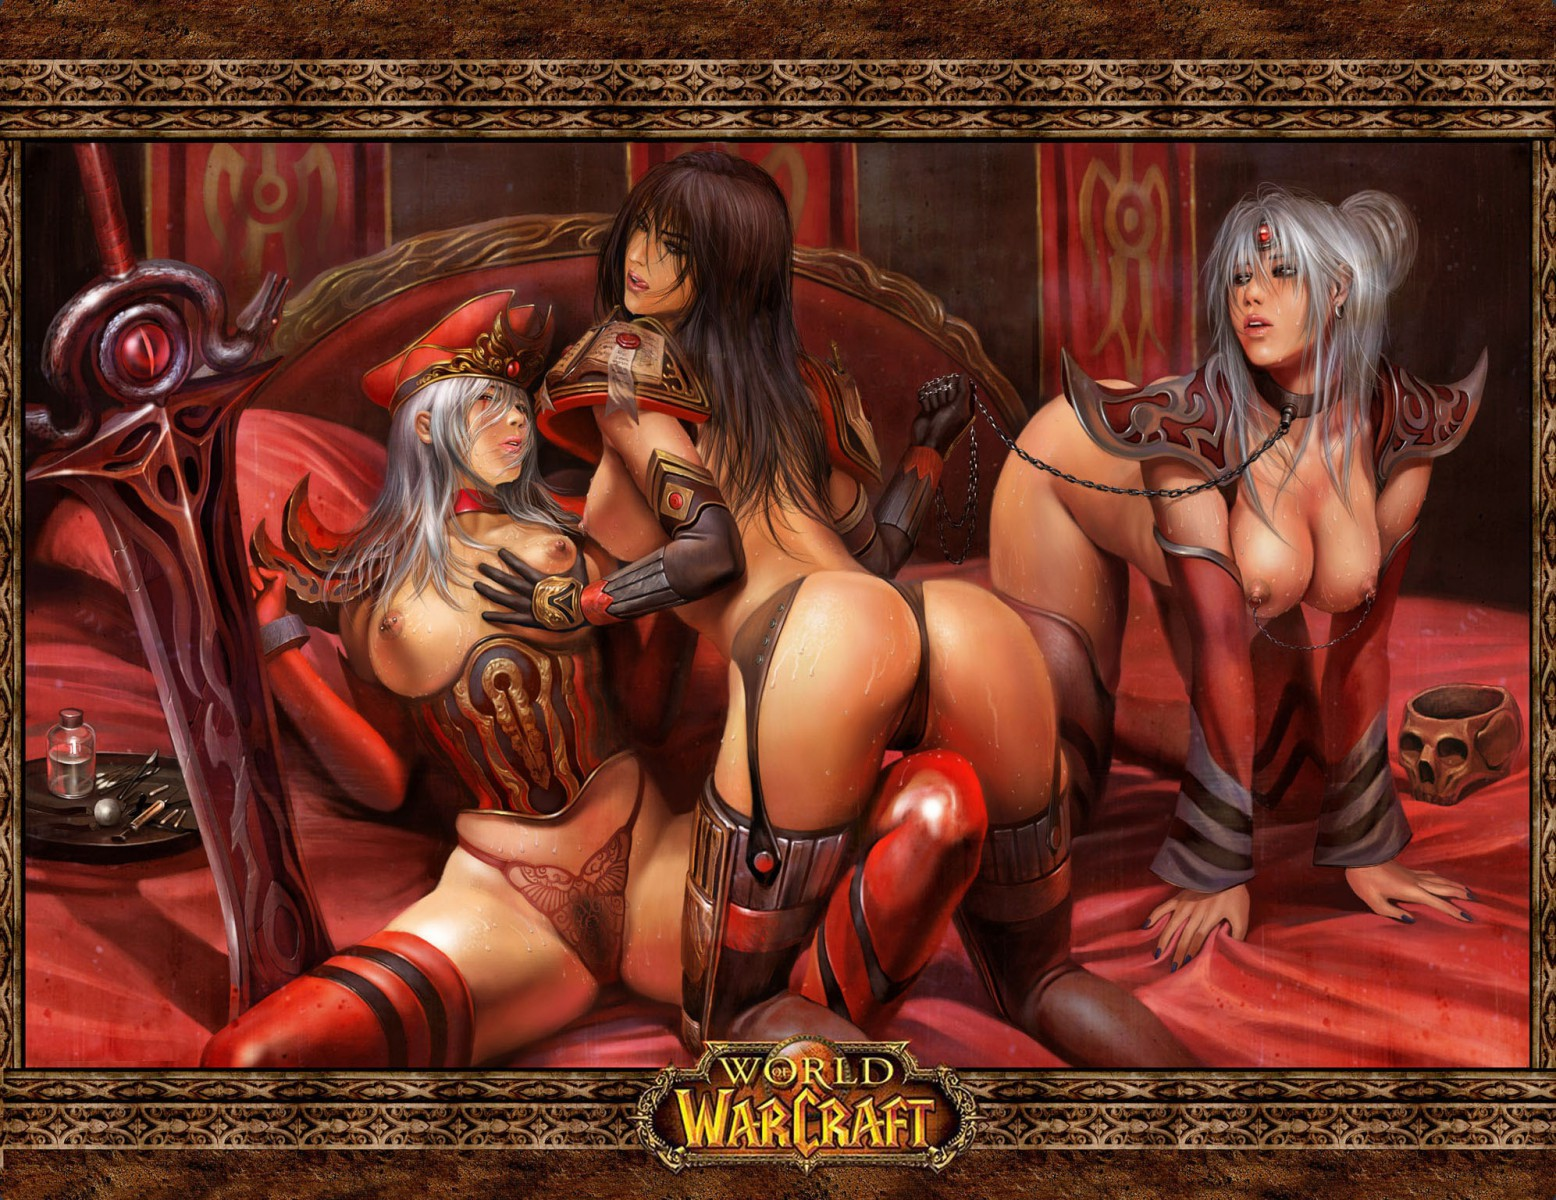 Worldofwarcraft pornpics sexual toons